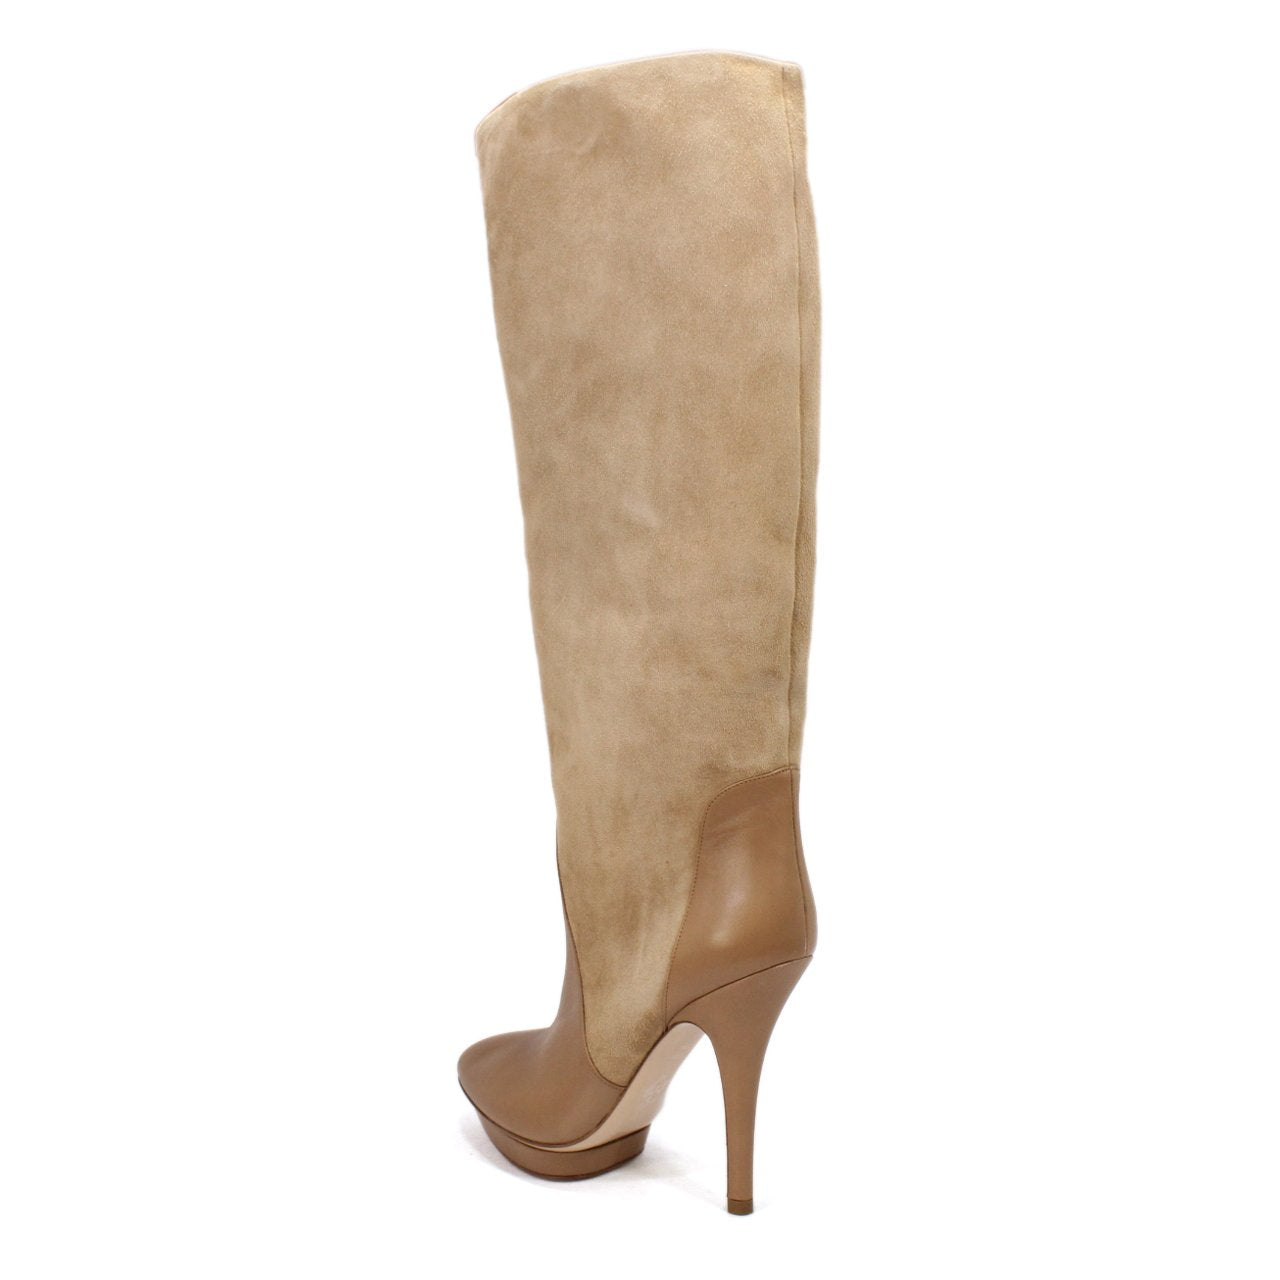 Bally Suana Women's Knee-High Platform Stiletto Heel Boots In Hazel